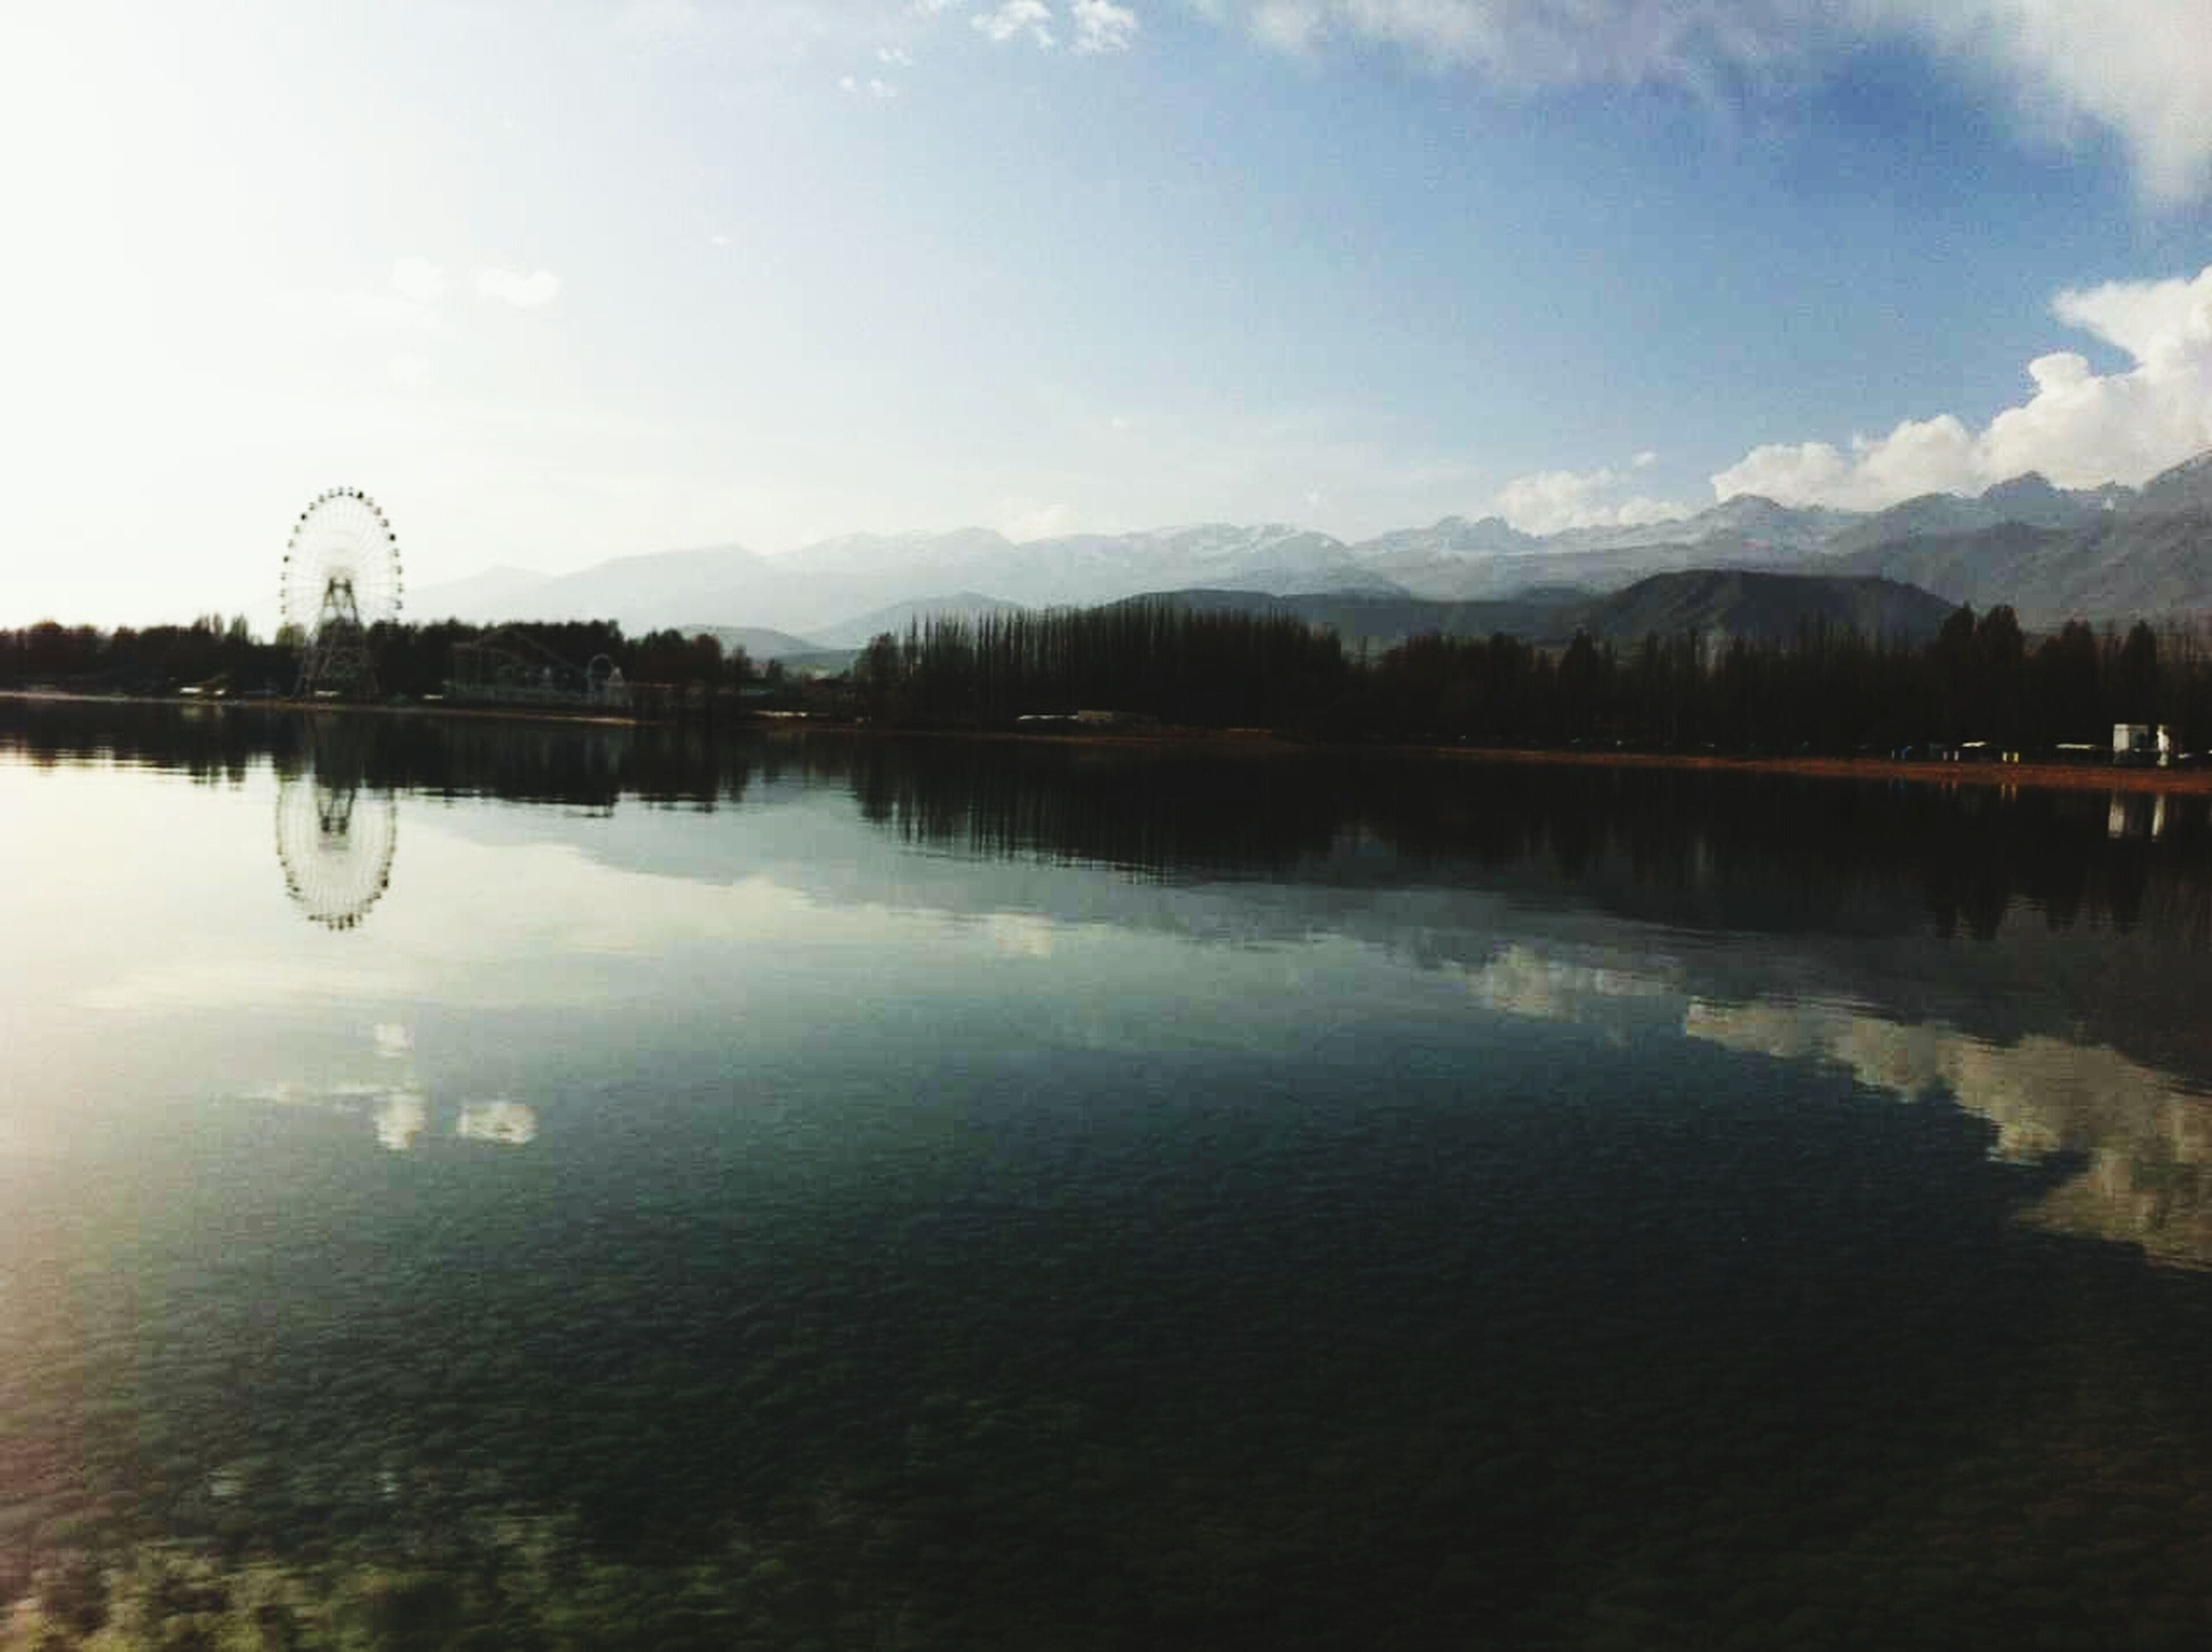 reflection, water, lake, sky, tranquil scene, tranquility, waterfront, scenics, beauty in nature, standing water, nature, cloud - sky, calm, tree, idyllic, cloud, outdoors, symmetry, no people, mountain